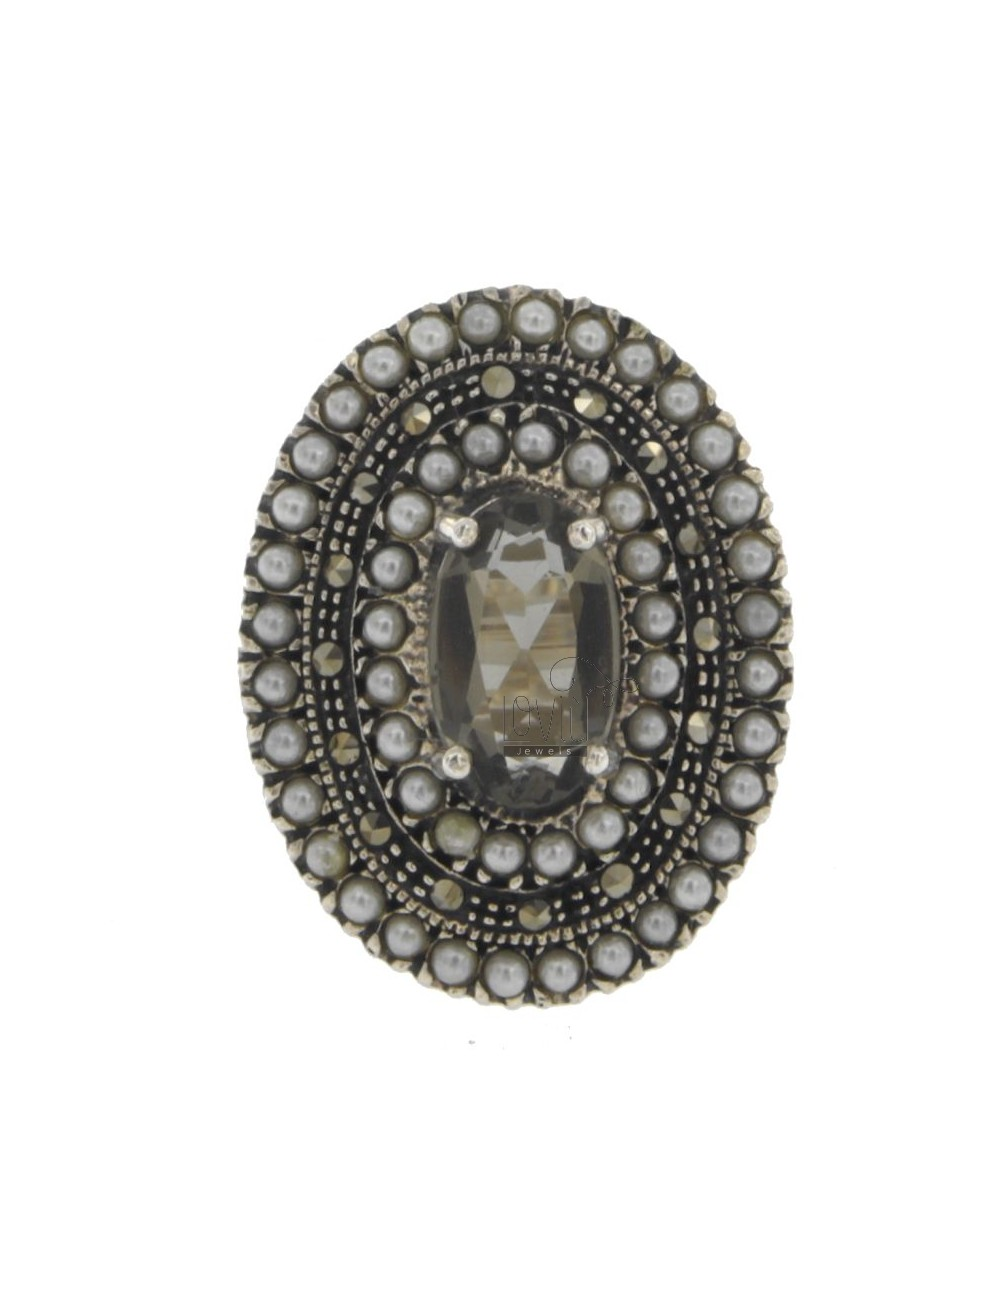 OVAL RING WITH MARCASITE, MICRO BEADS AND SMOKE CITRINE &39IN AG BRUNITO TIT 925 ‰ SIZE 17